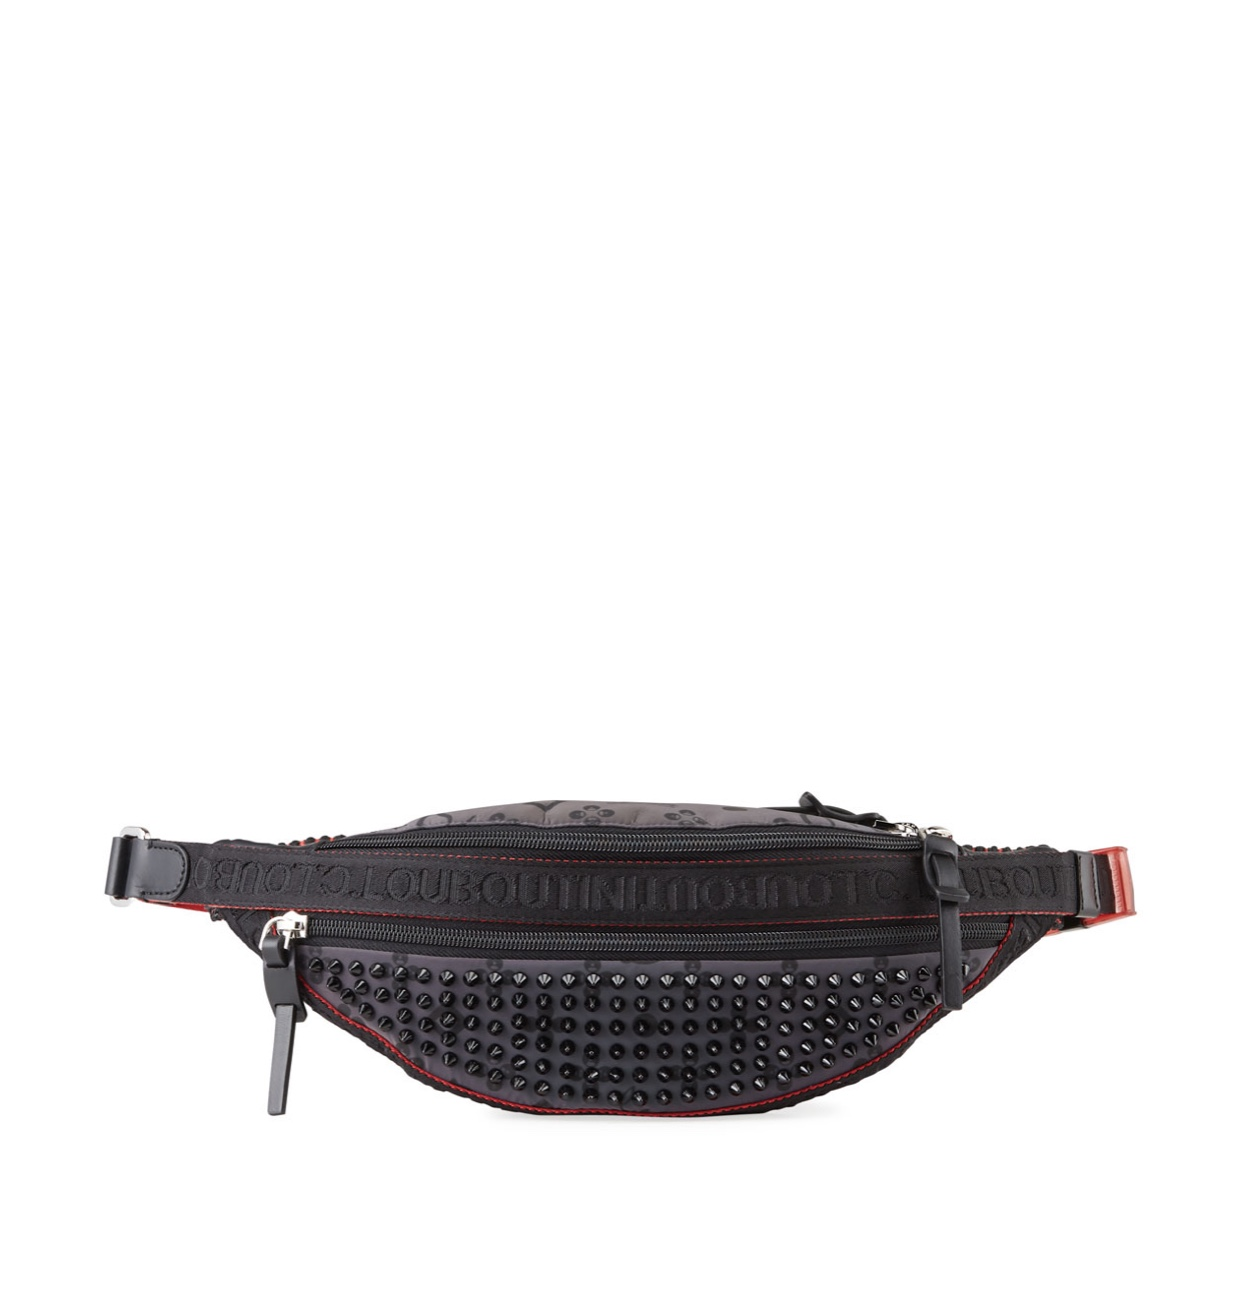 CHRISTIAN LOUBOUTIN Men's Paris NYC Spiked Belt Bag